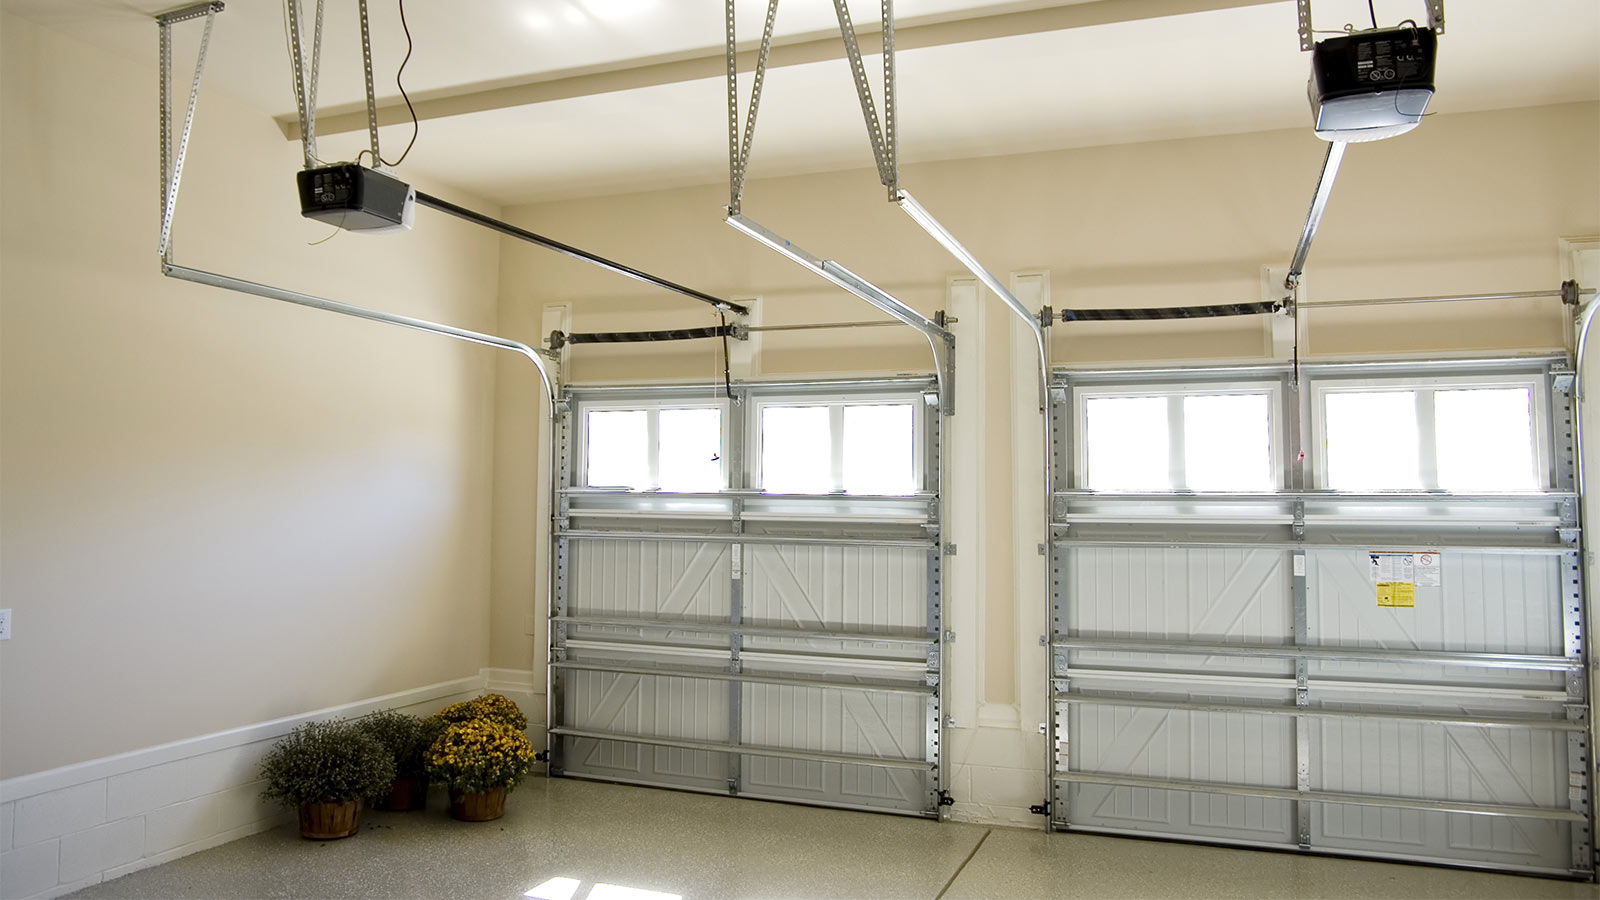 Sectional Garage Doors from Sectional Garage Doors Essex & London suppliers.